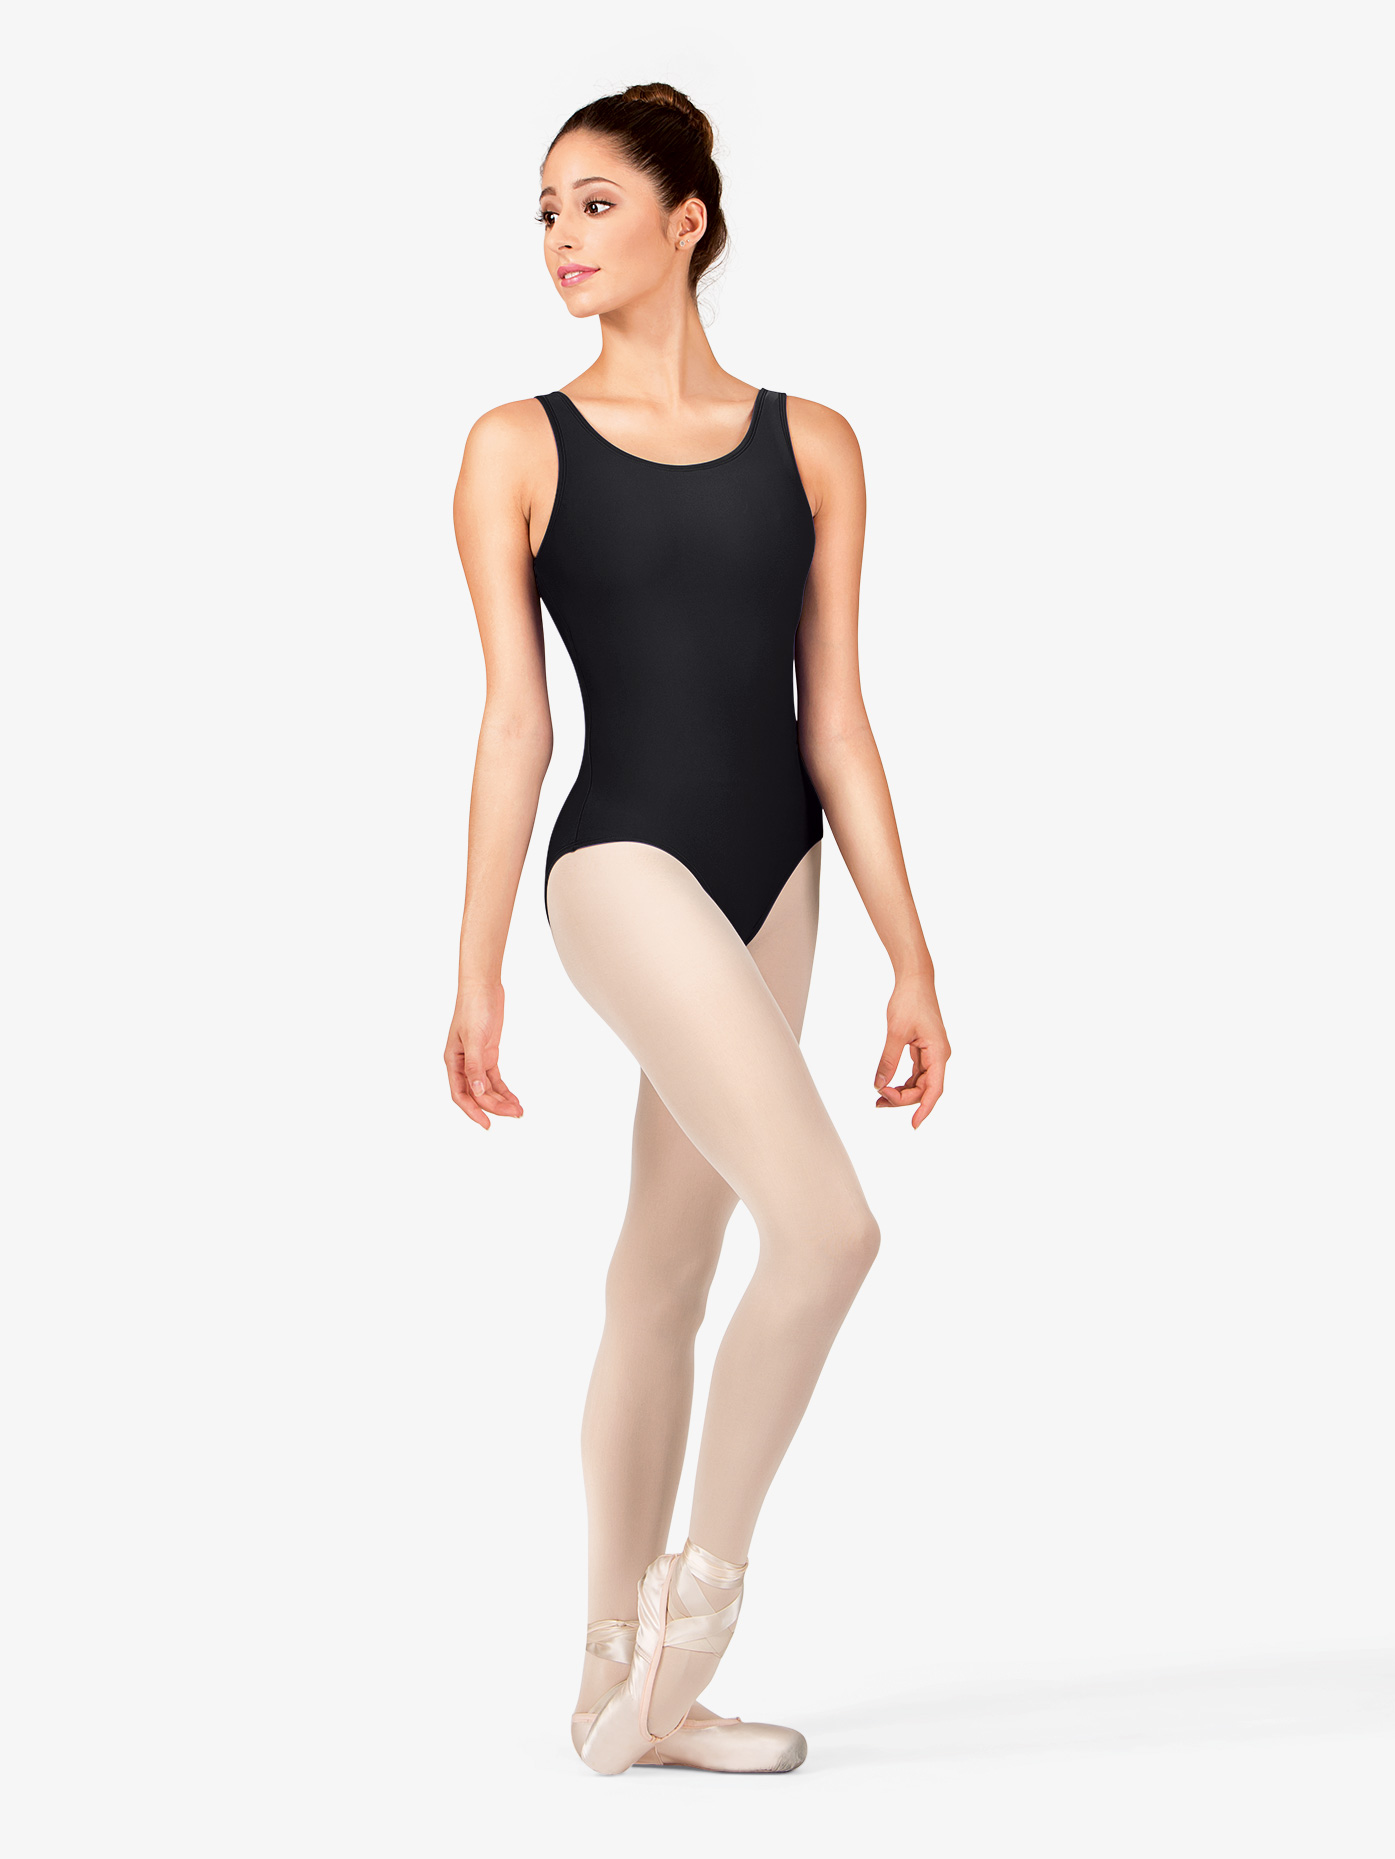 PRAISE DANCEWEAR, PRAISE DANCE WEAR,LITURGICAL DANCE WEAR,DISCOUNT PRAISE WEAR,PRAISE DANCE,DANCE FASHIONS IN ATLANTA,DISCOUNT DANCE,PRAISE DANCE ATTIRE,FLAMENCO SHOES. praise dancewear,discount praisewear, liturgical dancewear,cheap church dancewear, worship dance attire,discount praisewear.